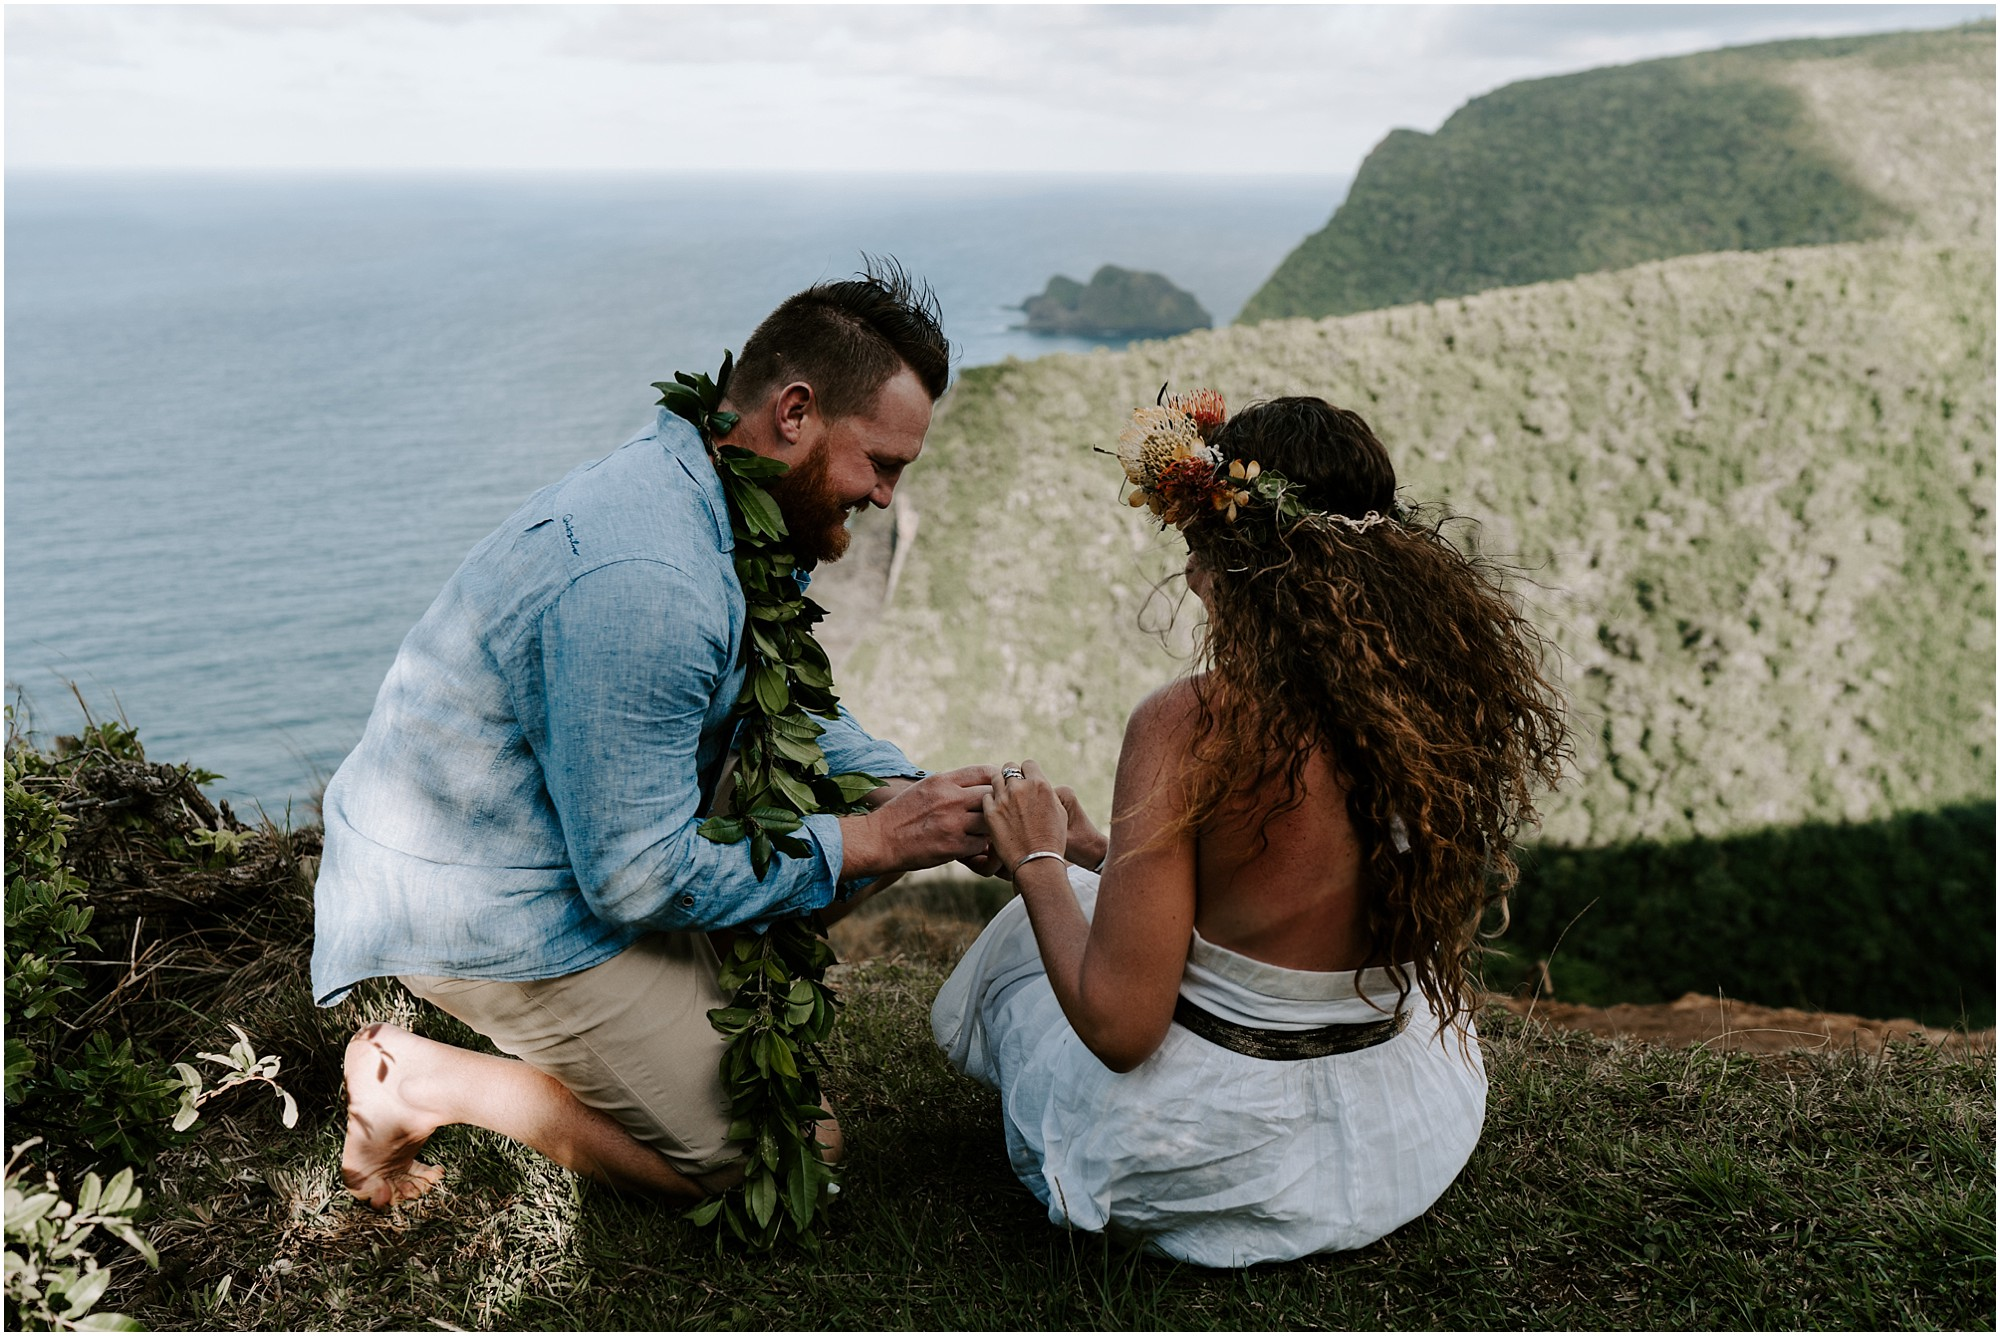 big-island-valley-proposal-hawaii-elopement-photographer_0021.jpg